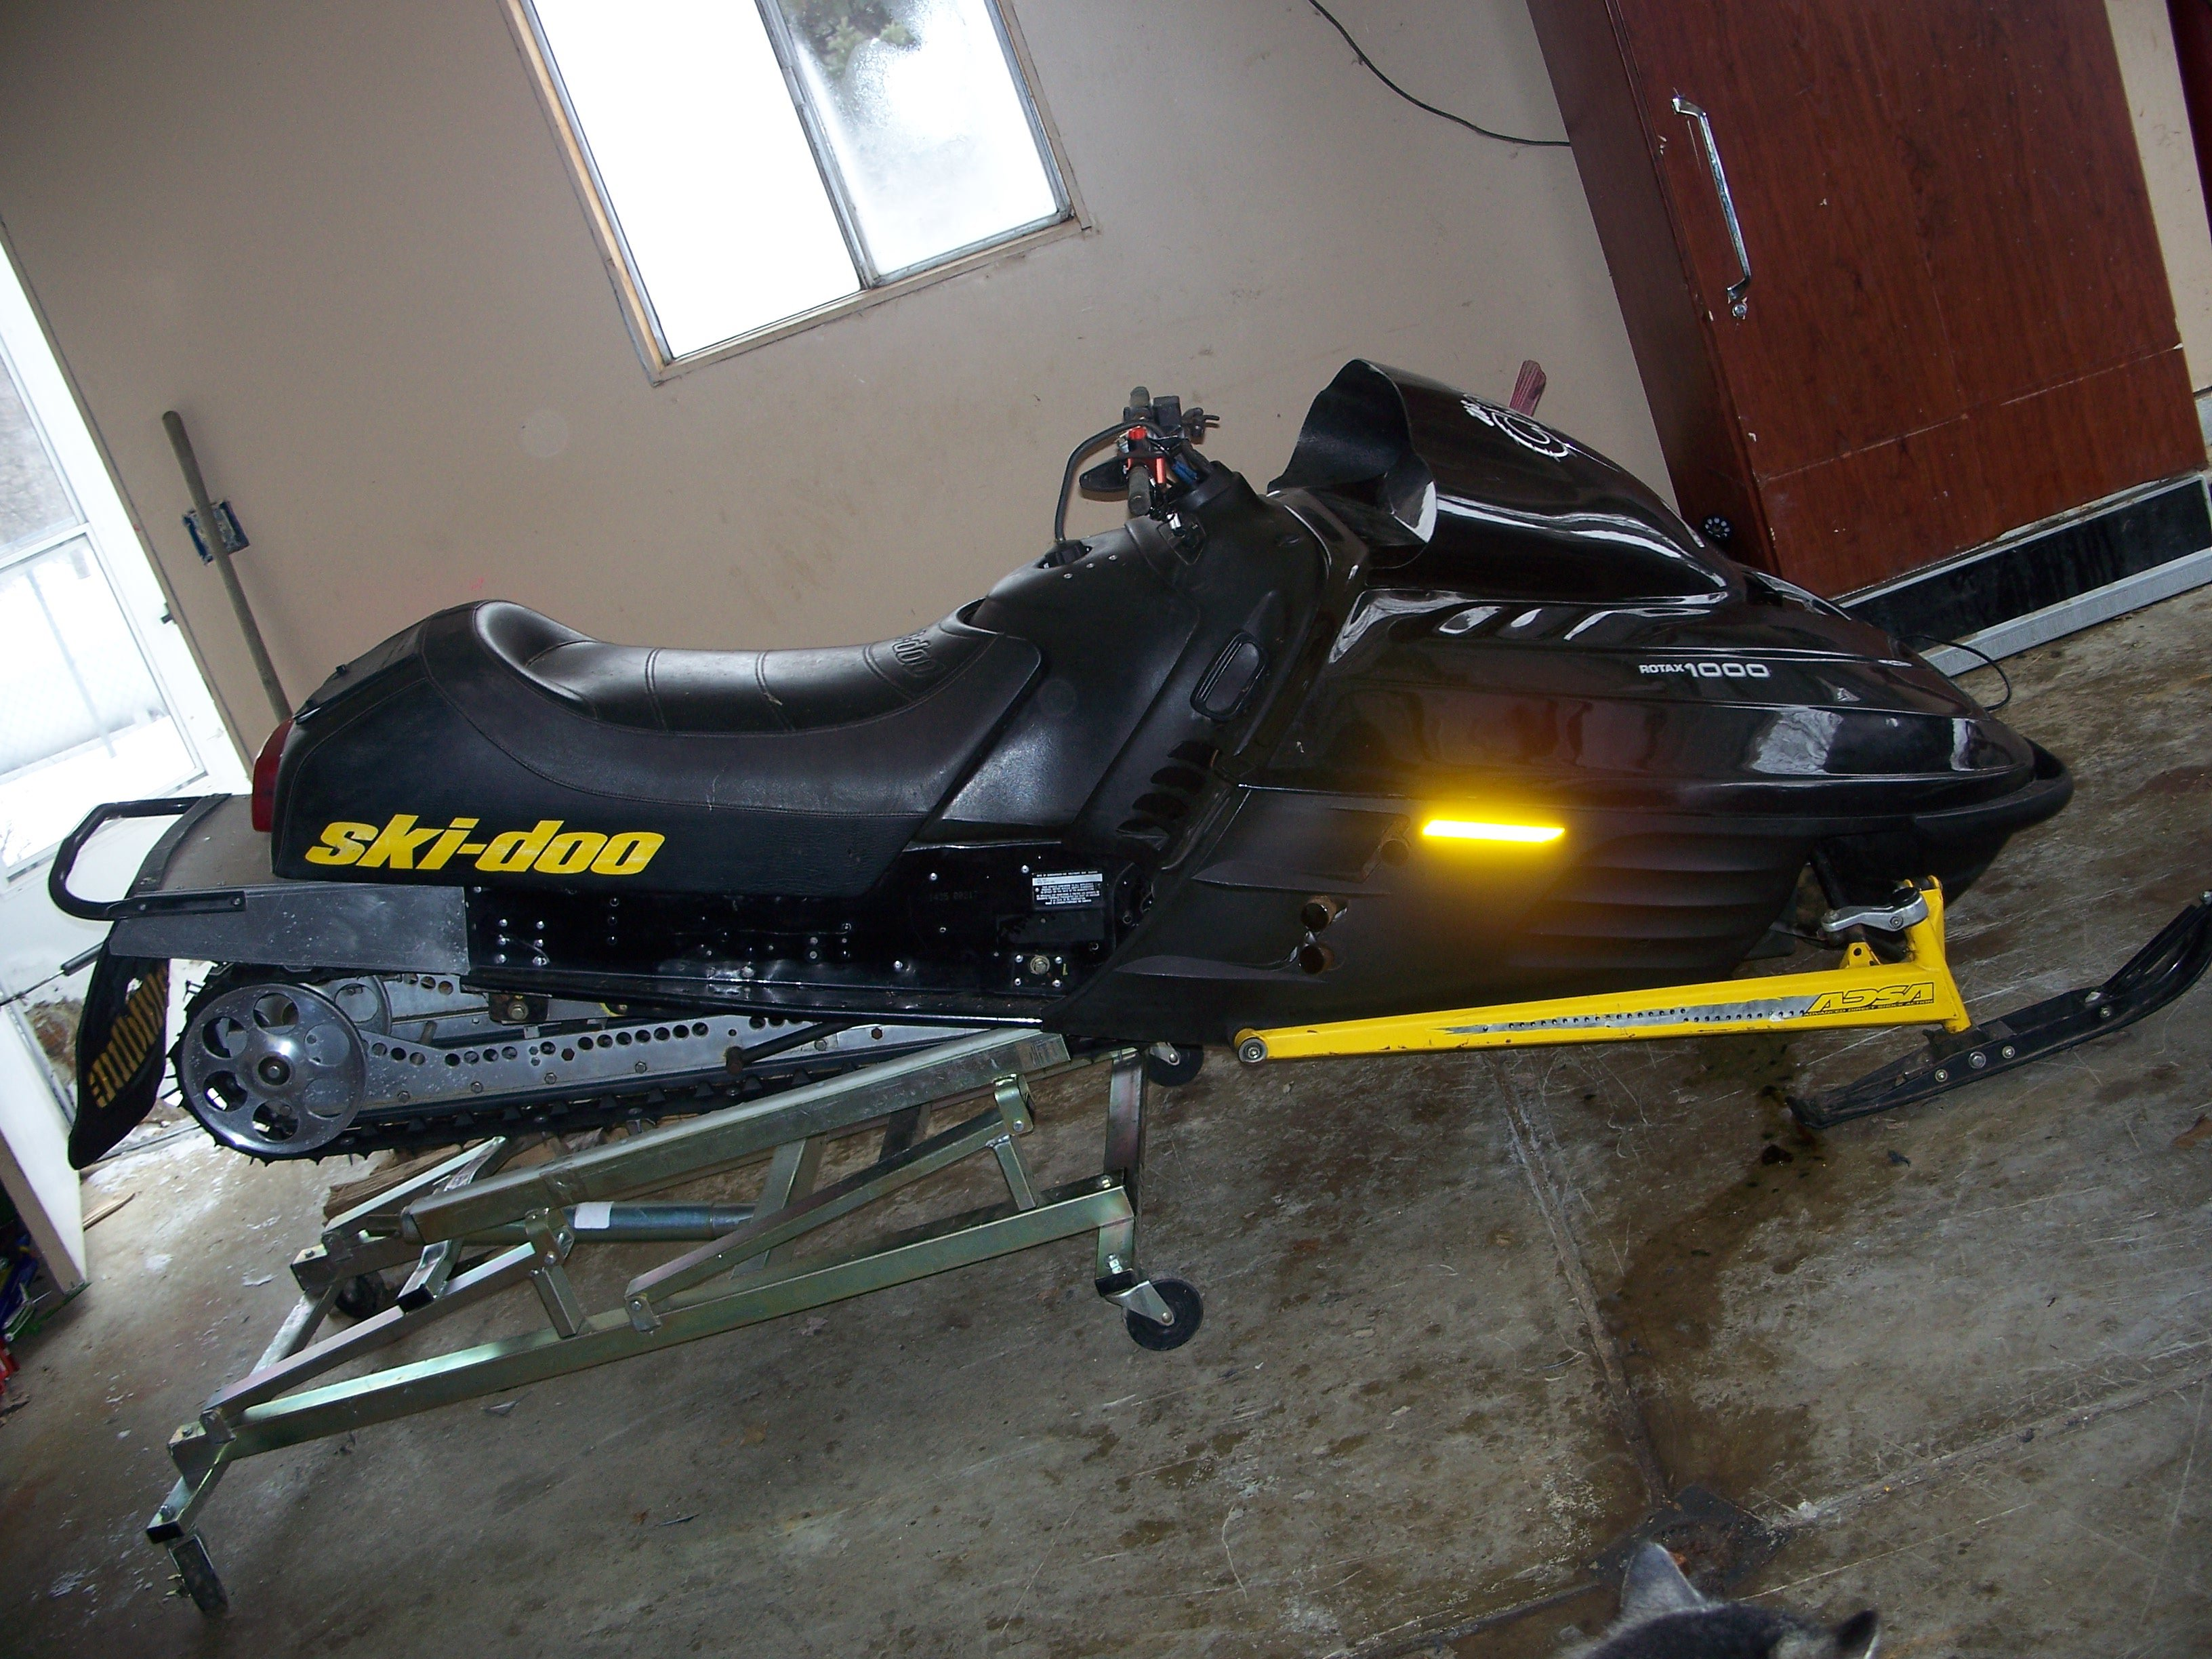 Drag Sled For Sale-100_0526.jpg